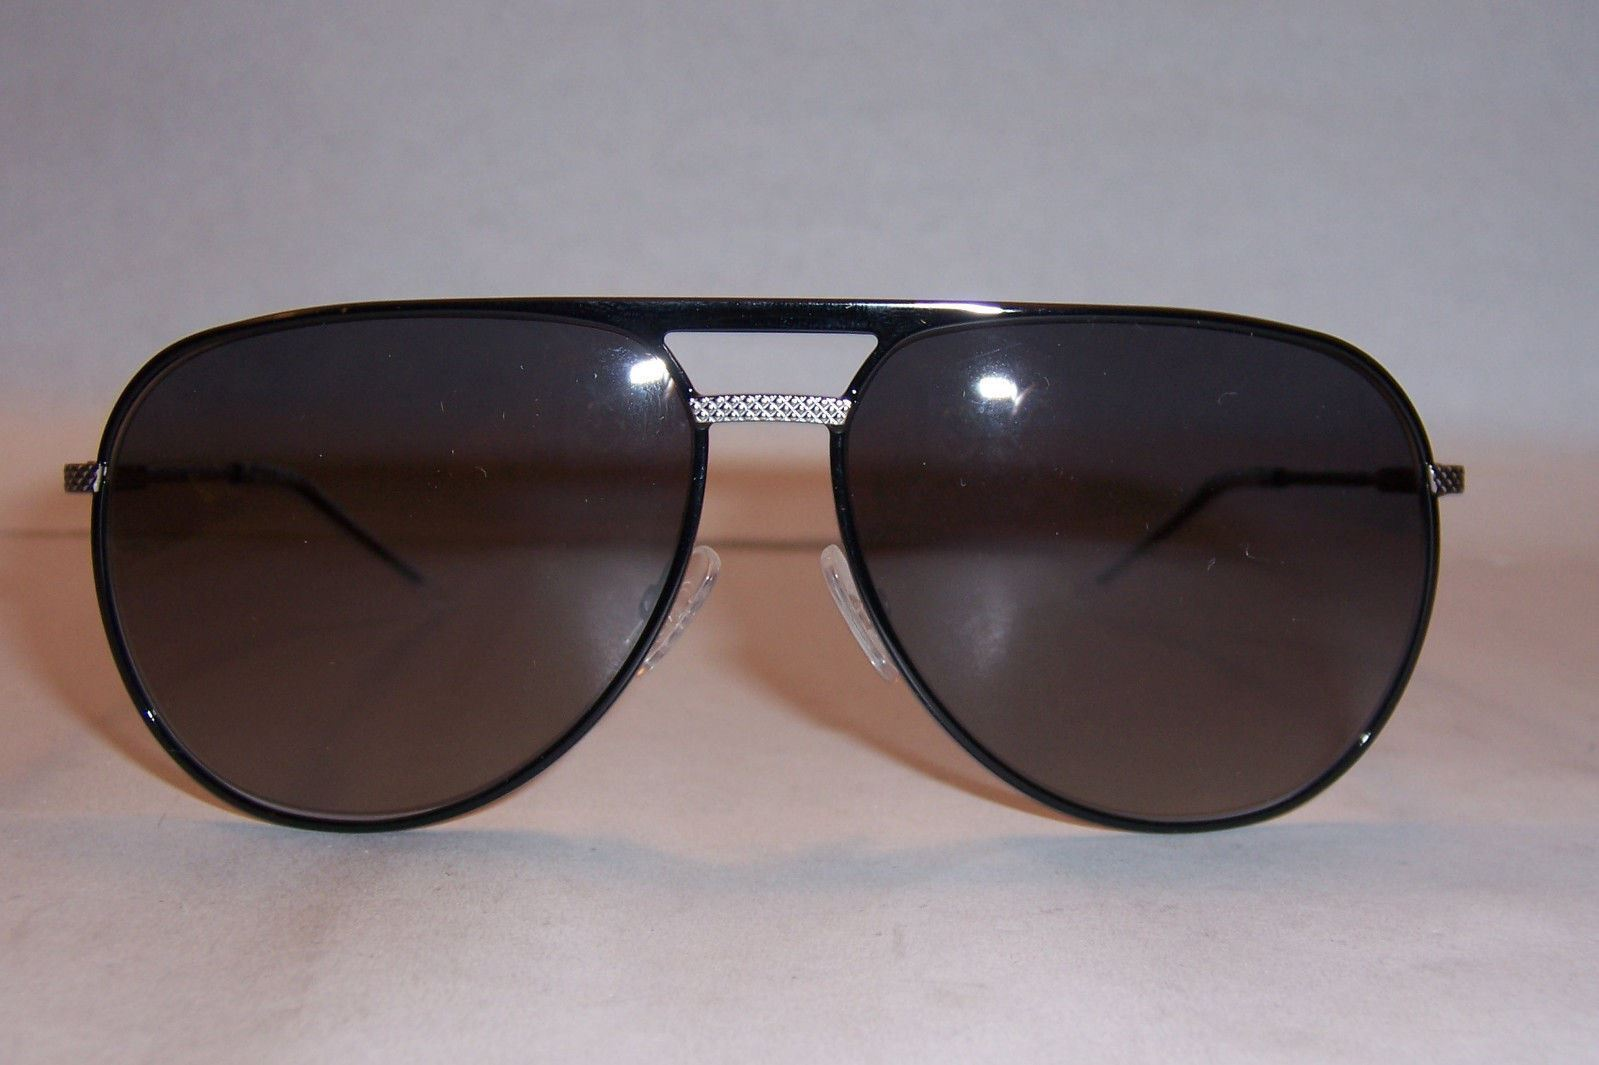 cb748f171cf5 Dior Homme Sunglasses 0177 s 0006 Black 61mm for sale online